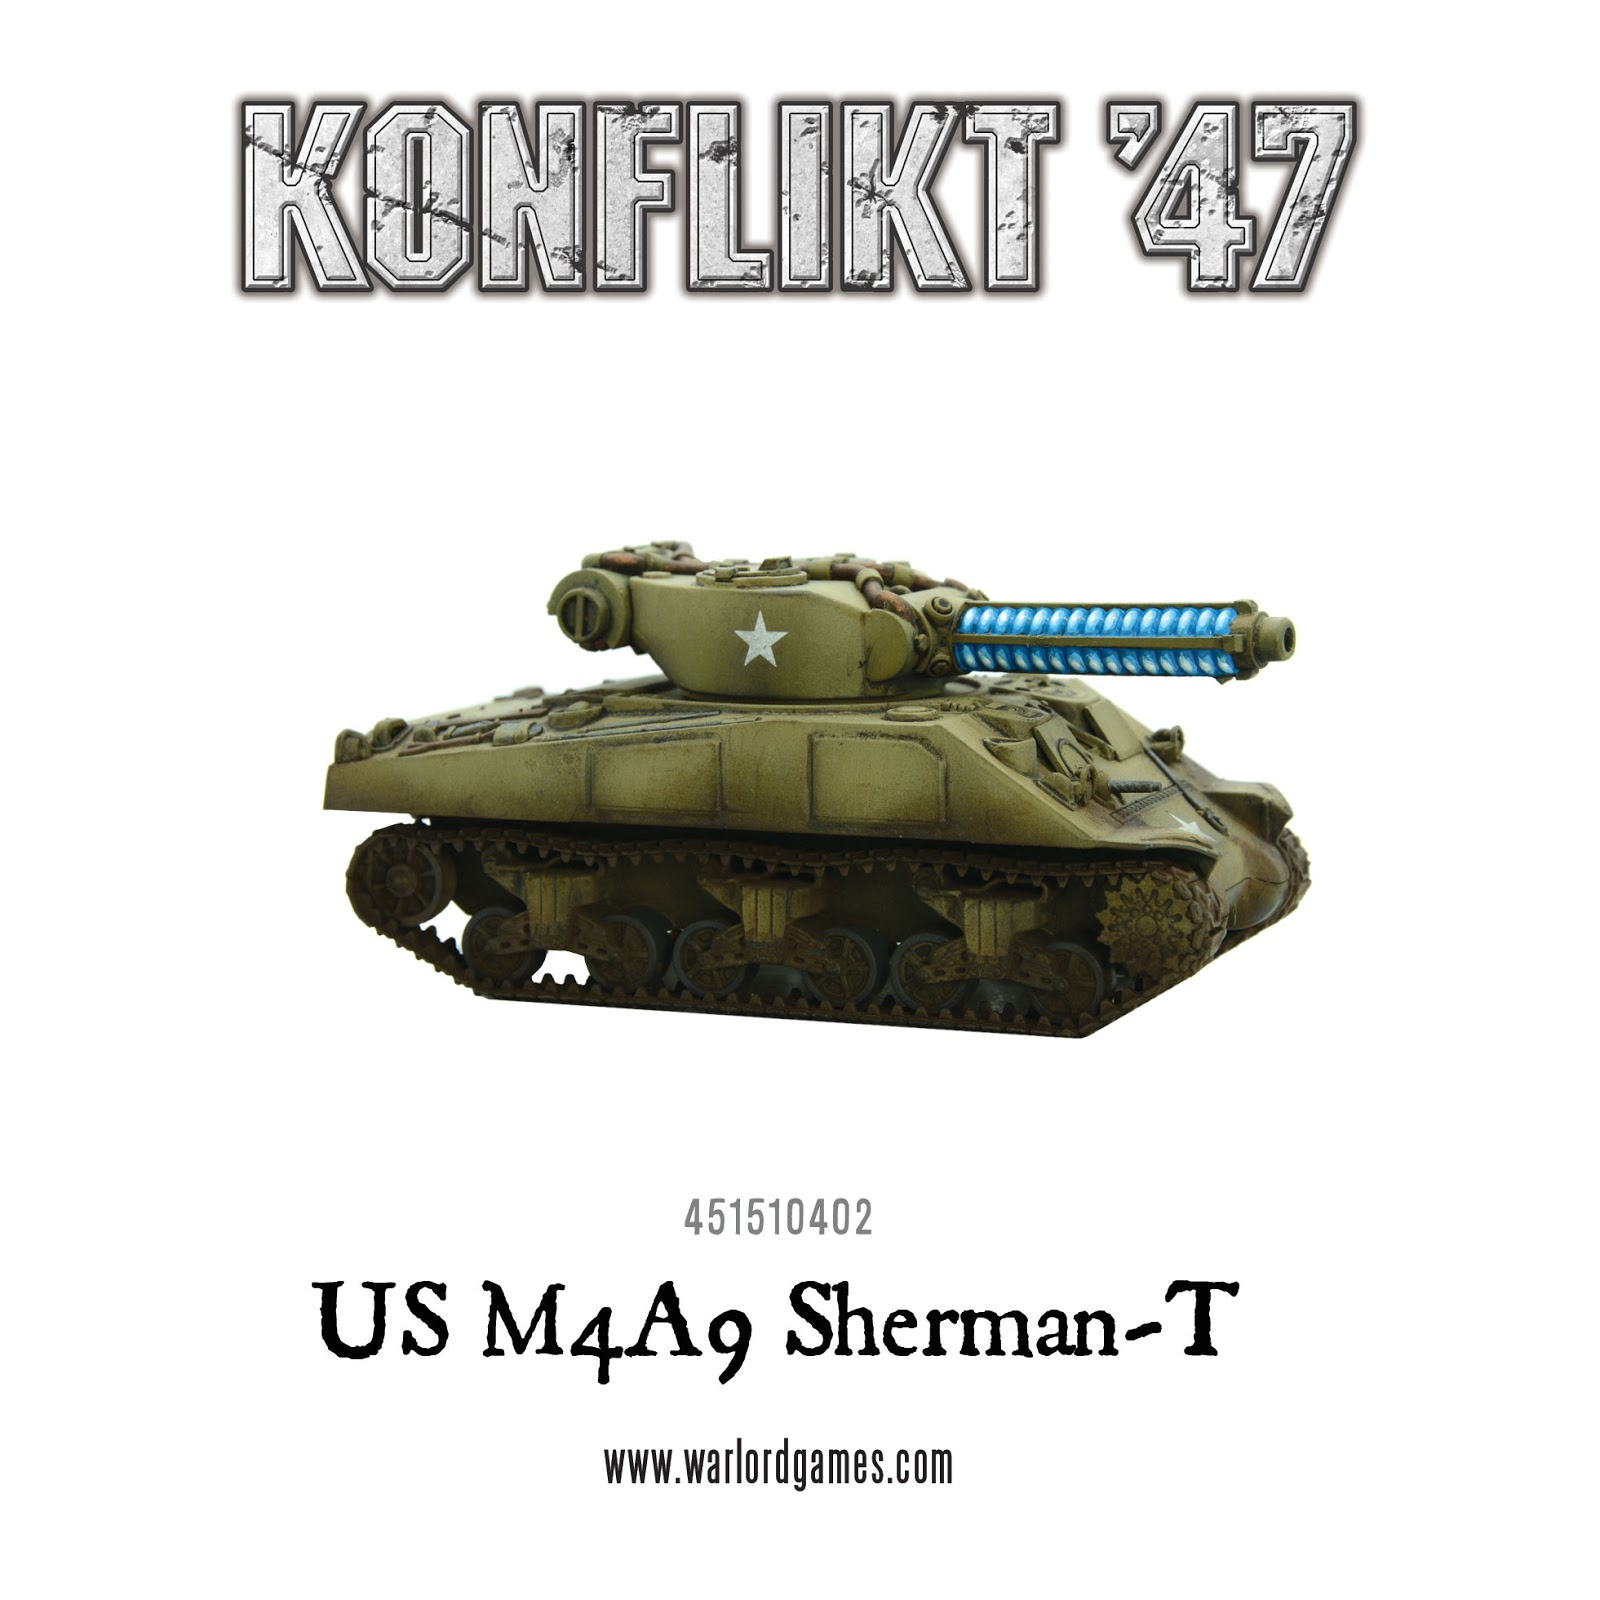 sherman mills men Get information, facts, and pictures about shermans march 1864 at encyclopediacom make research projects and school reports about shermans march 1864 easy with credible articles from our free, online encyclopedia and dictionary.